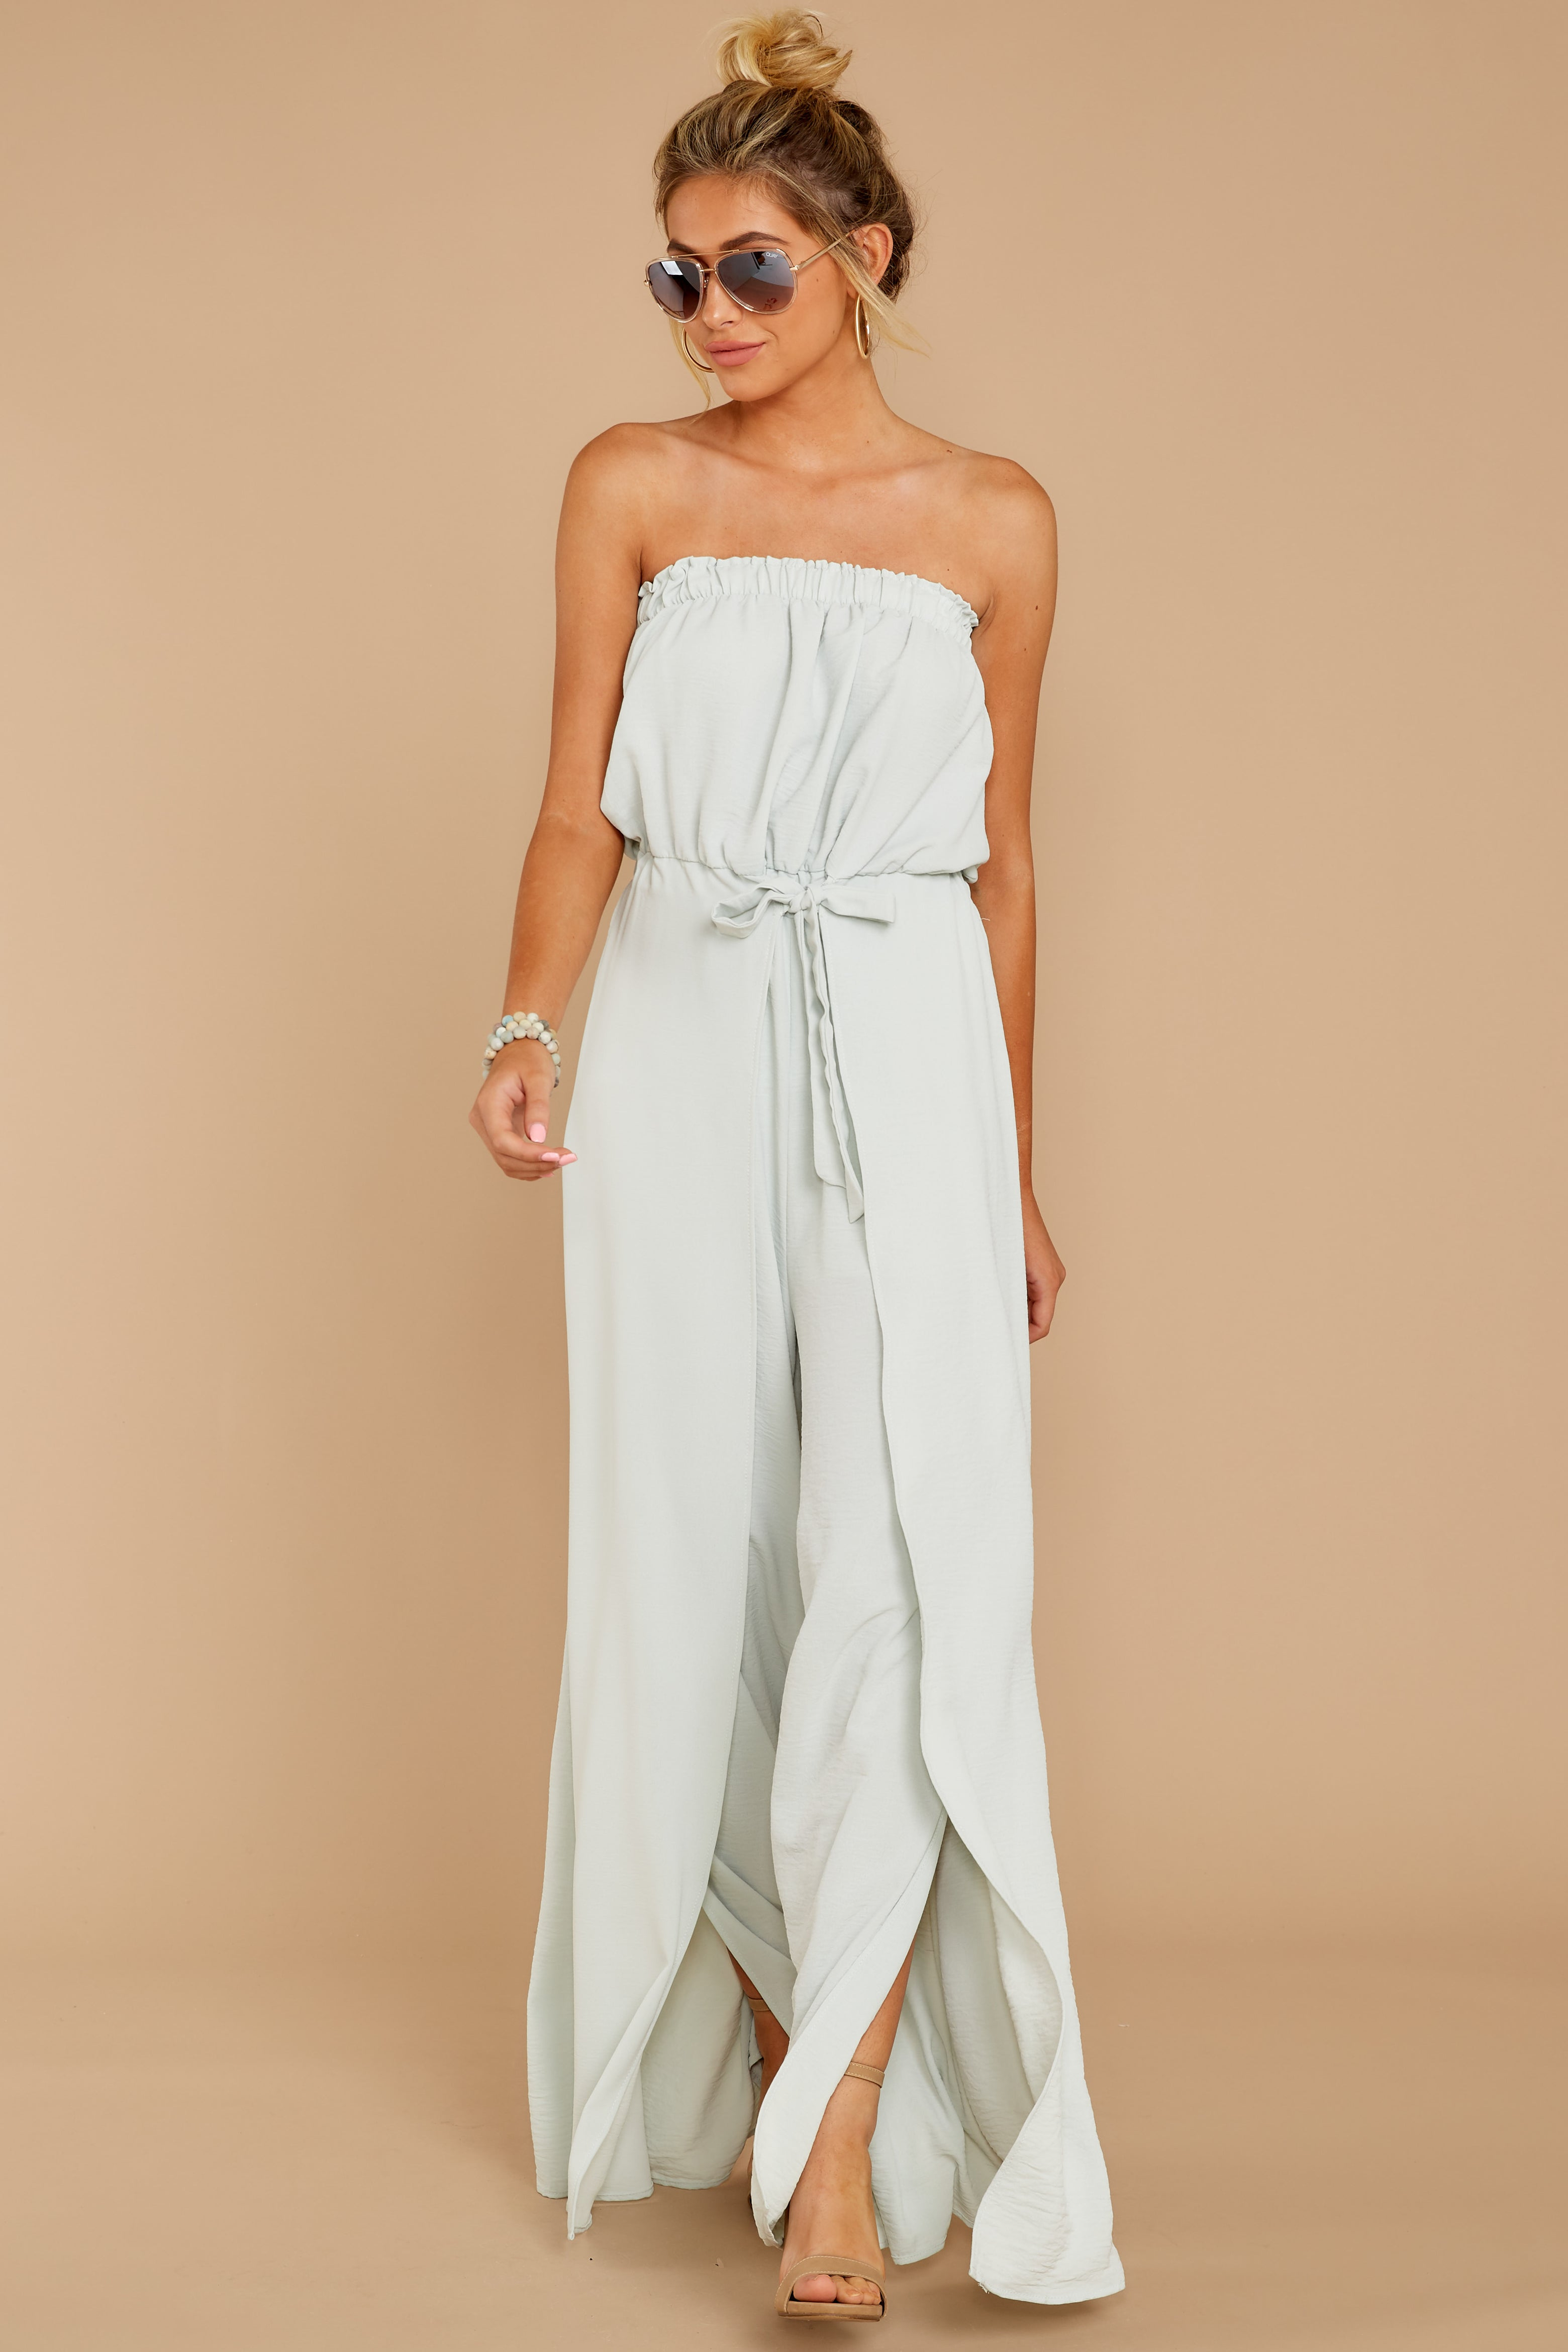 1 International Traveler Pastel Mint Jumpsuit at reddress.com